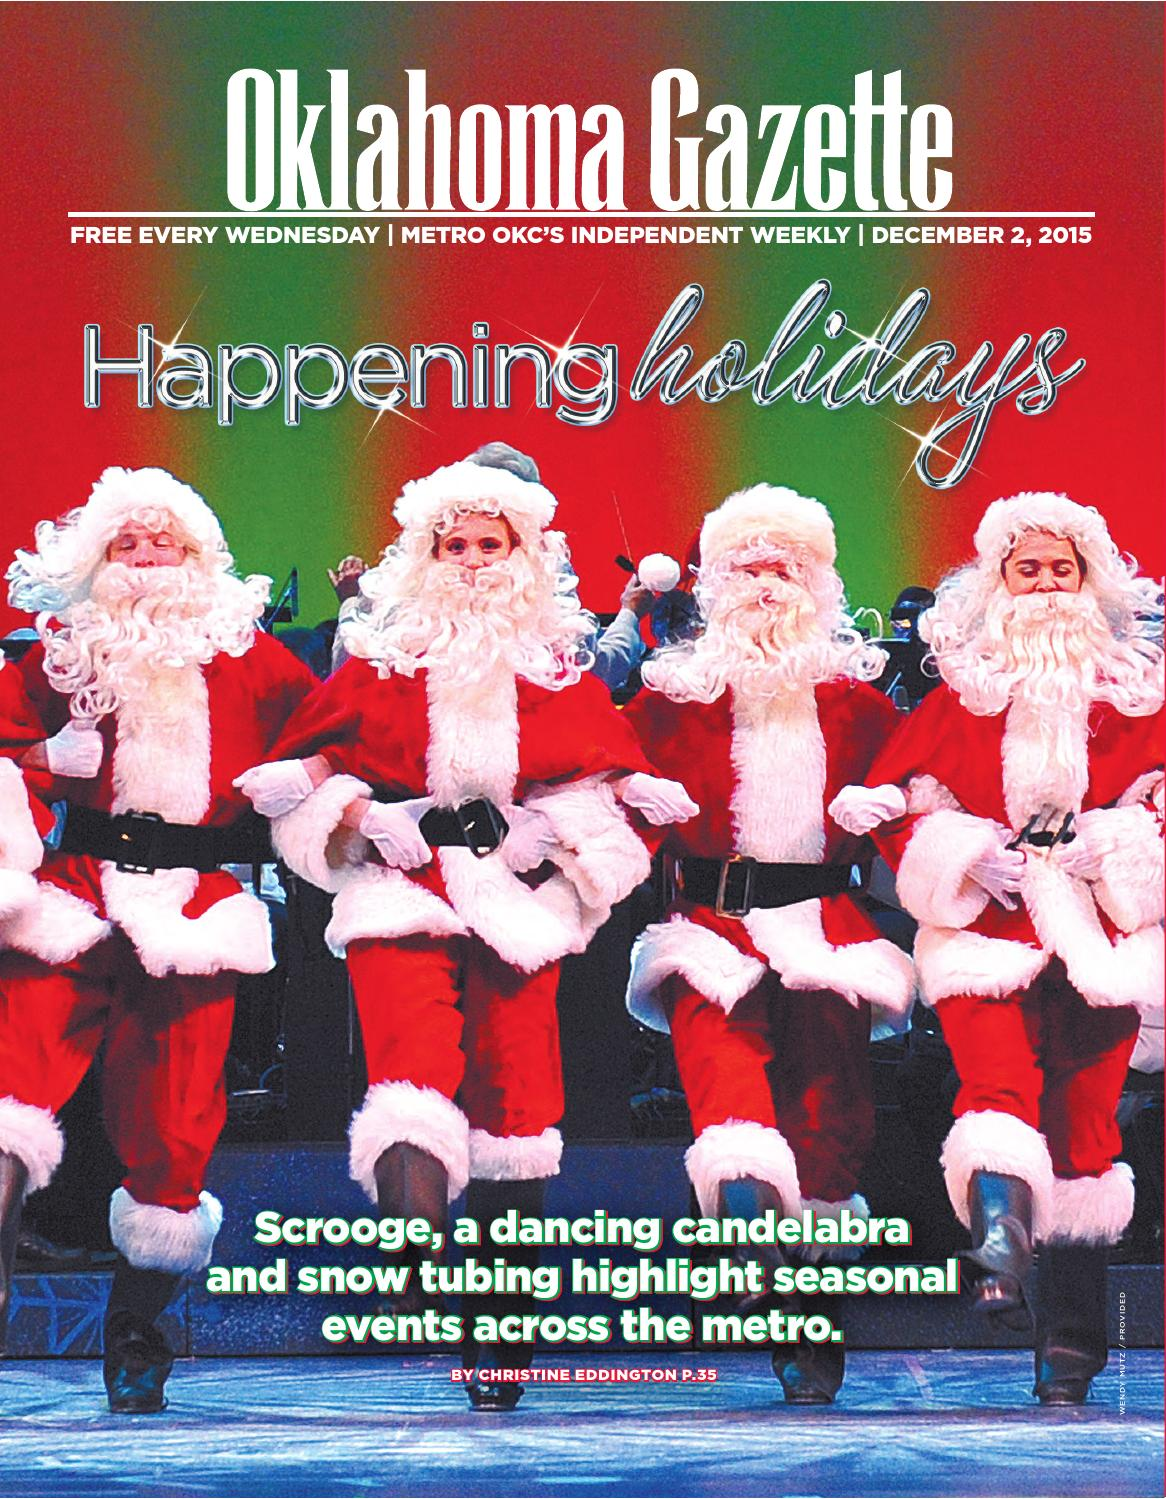 Okc Christmas Events.Happening Holidays By Oklahoma Gazette Issuu